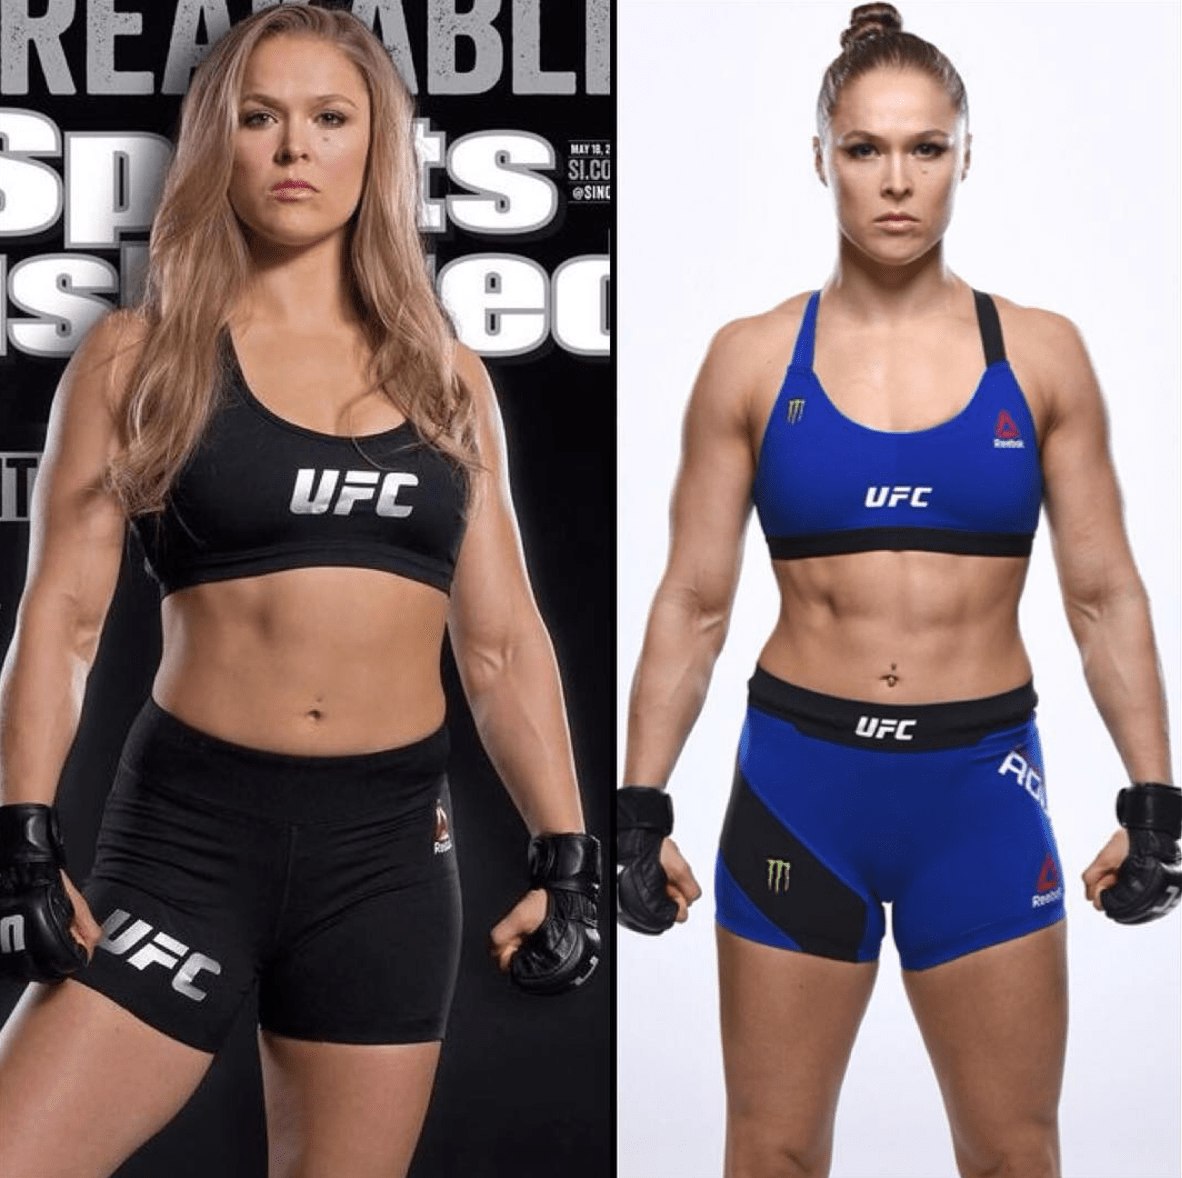 Rousey UFC 207